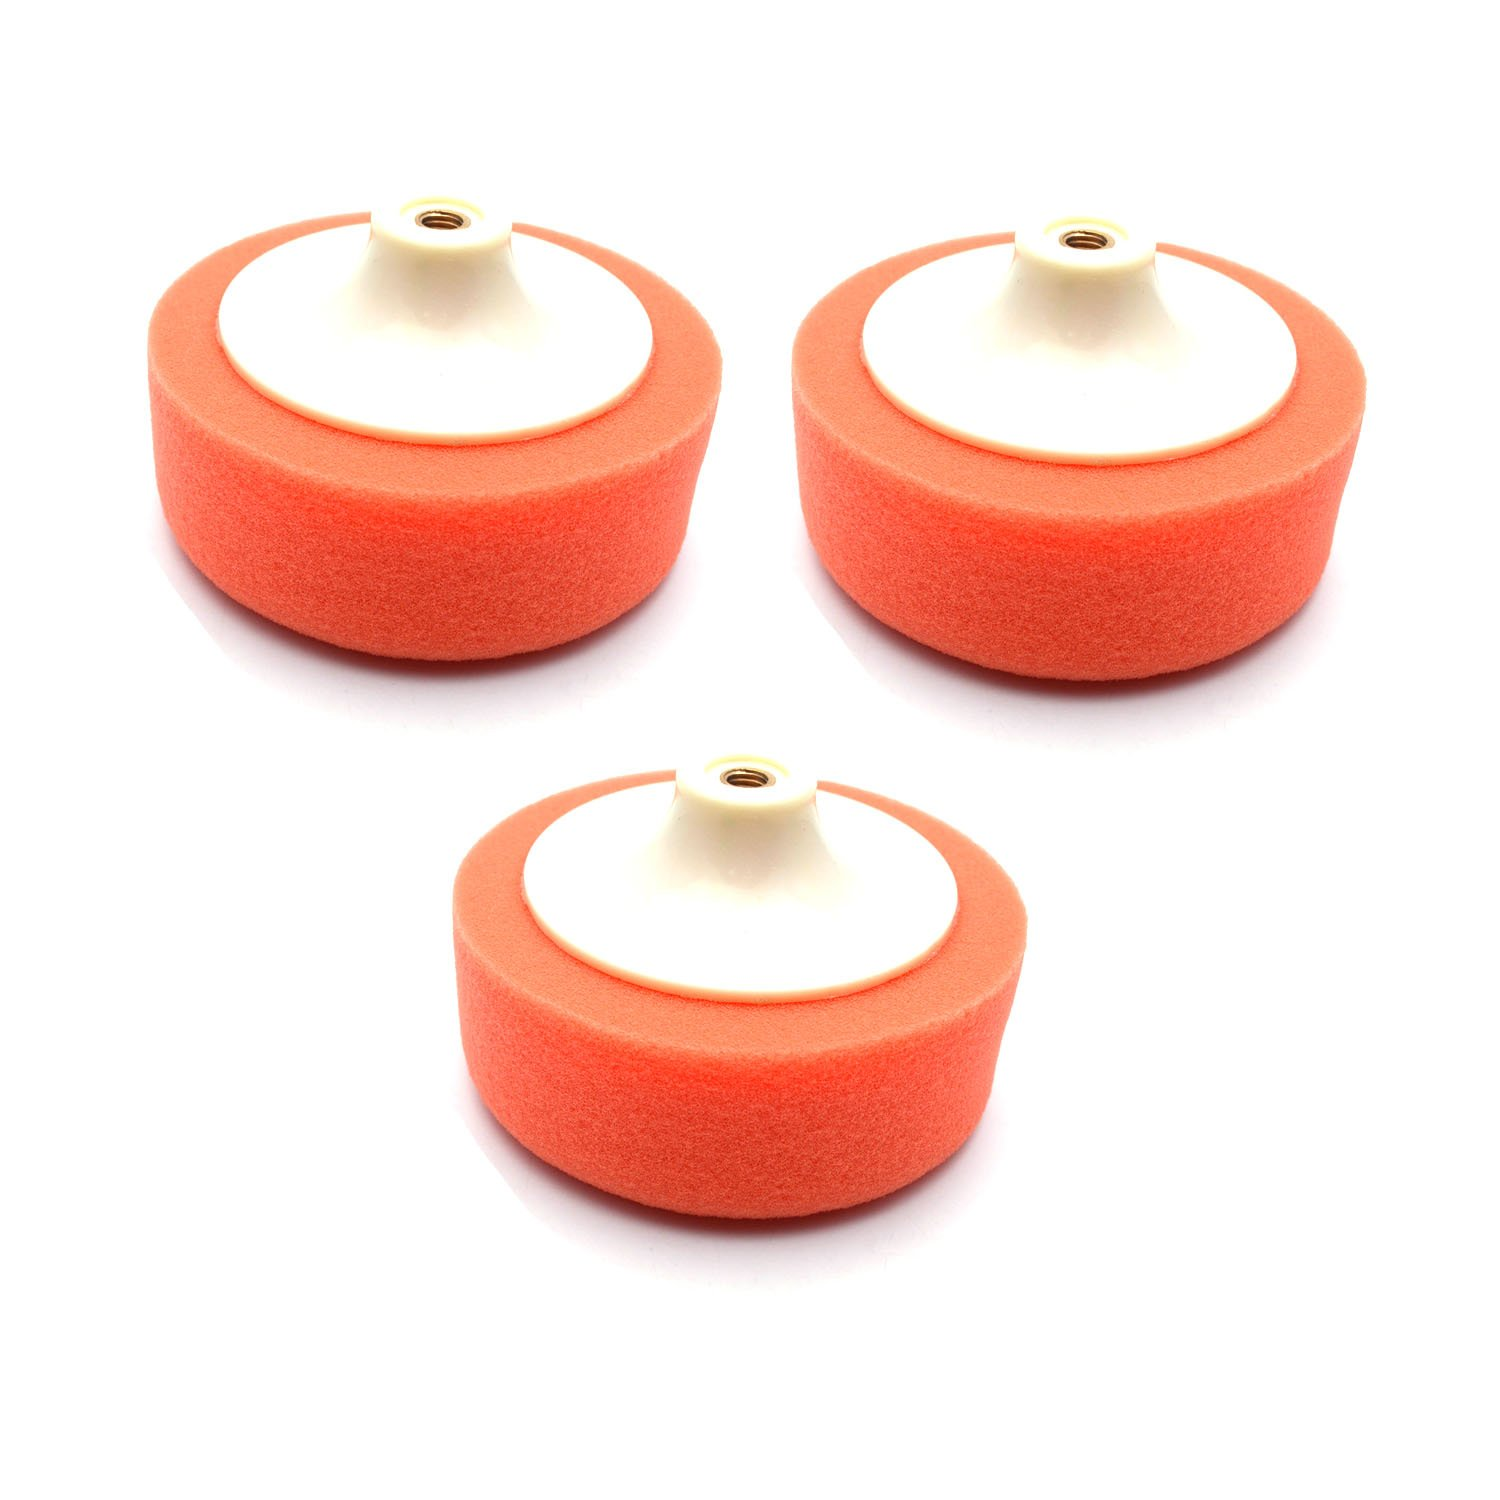 Antrader 5 Inch Sponge Polishing Pad 10mm Thread Foam Waxing Disc for Car Beauty Buffing Orange 3pcs